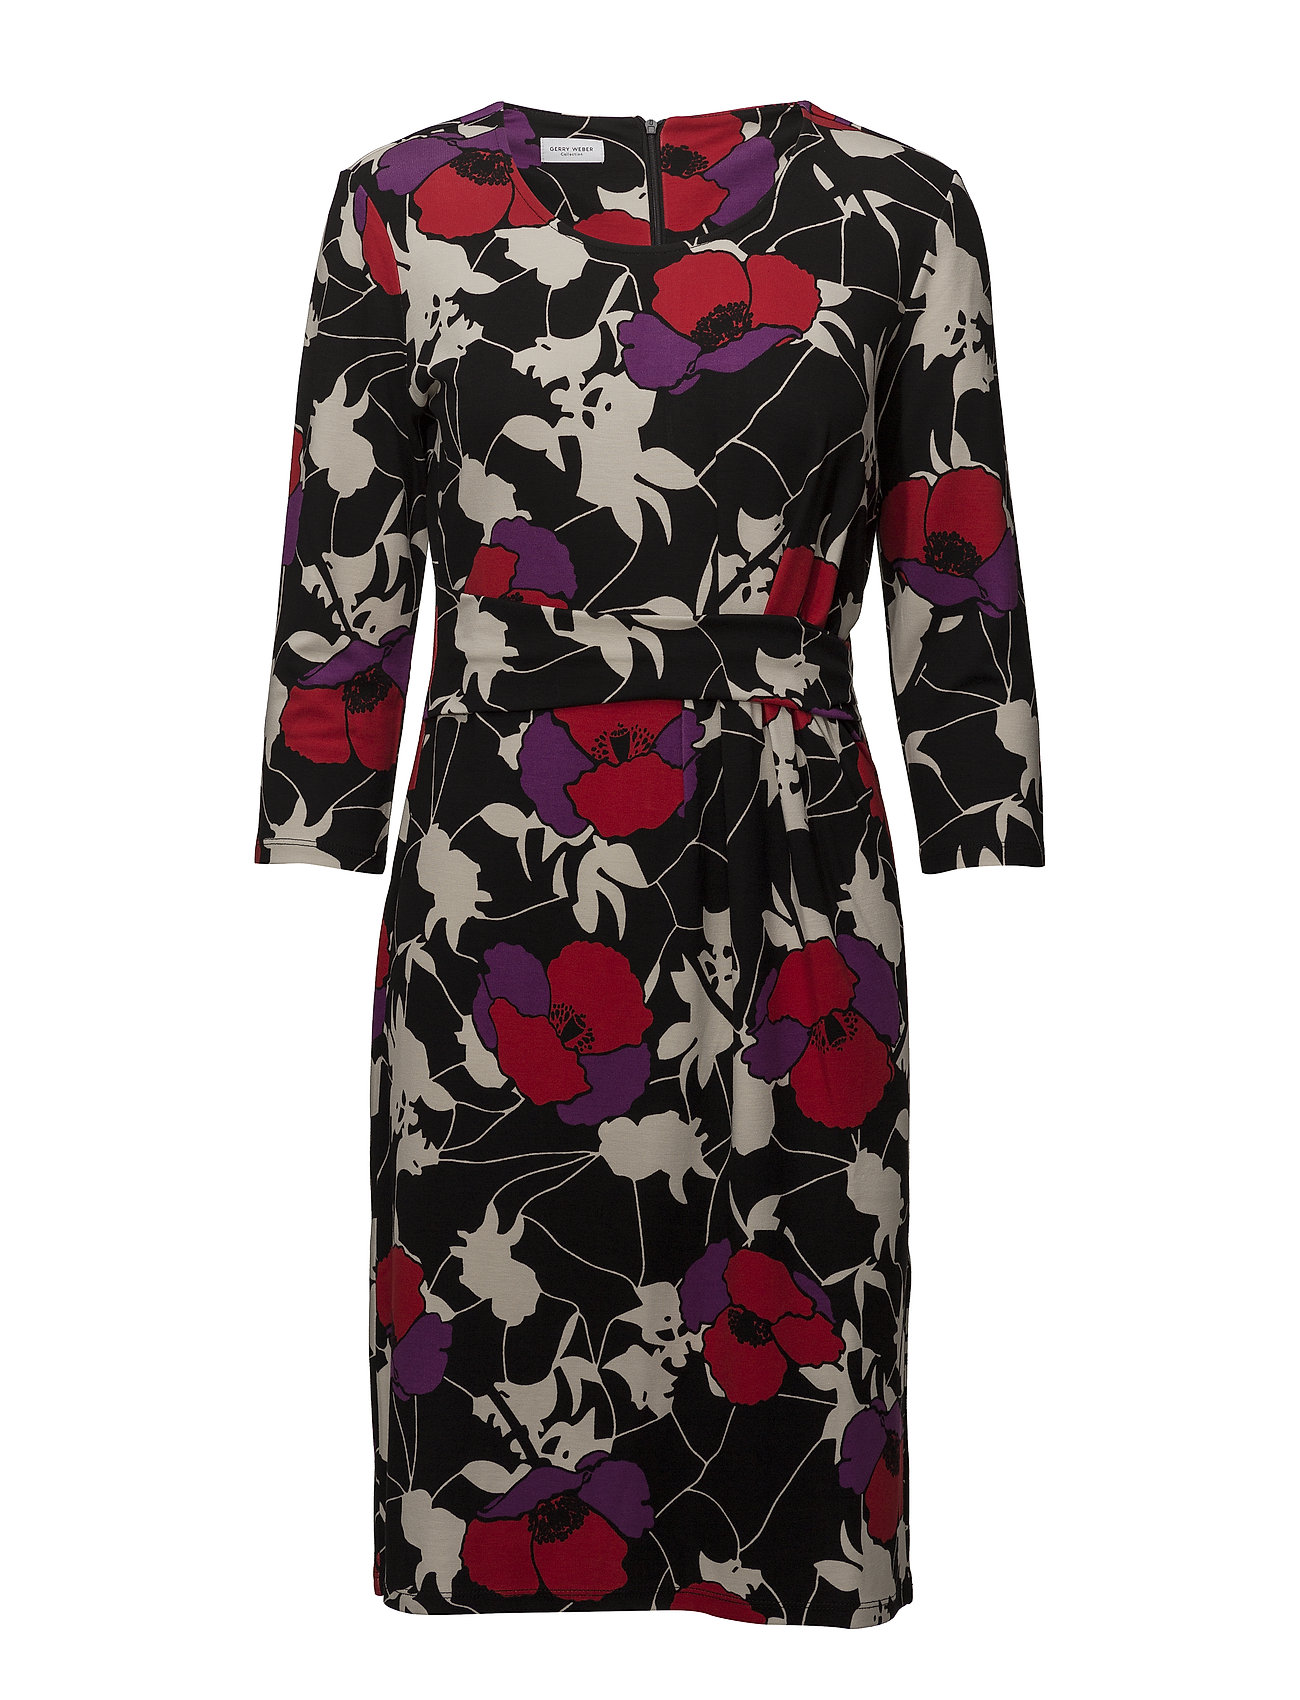 Gerry Weber DRESS KNITTED FABRIC - BLACK / RED / LILAC PRINT